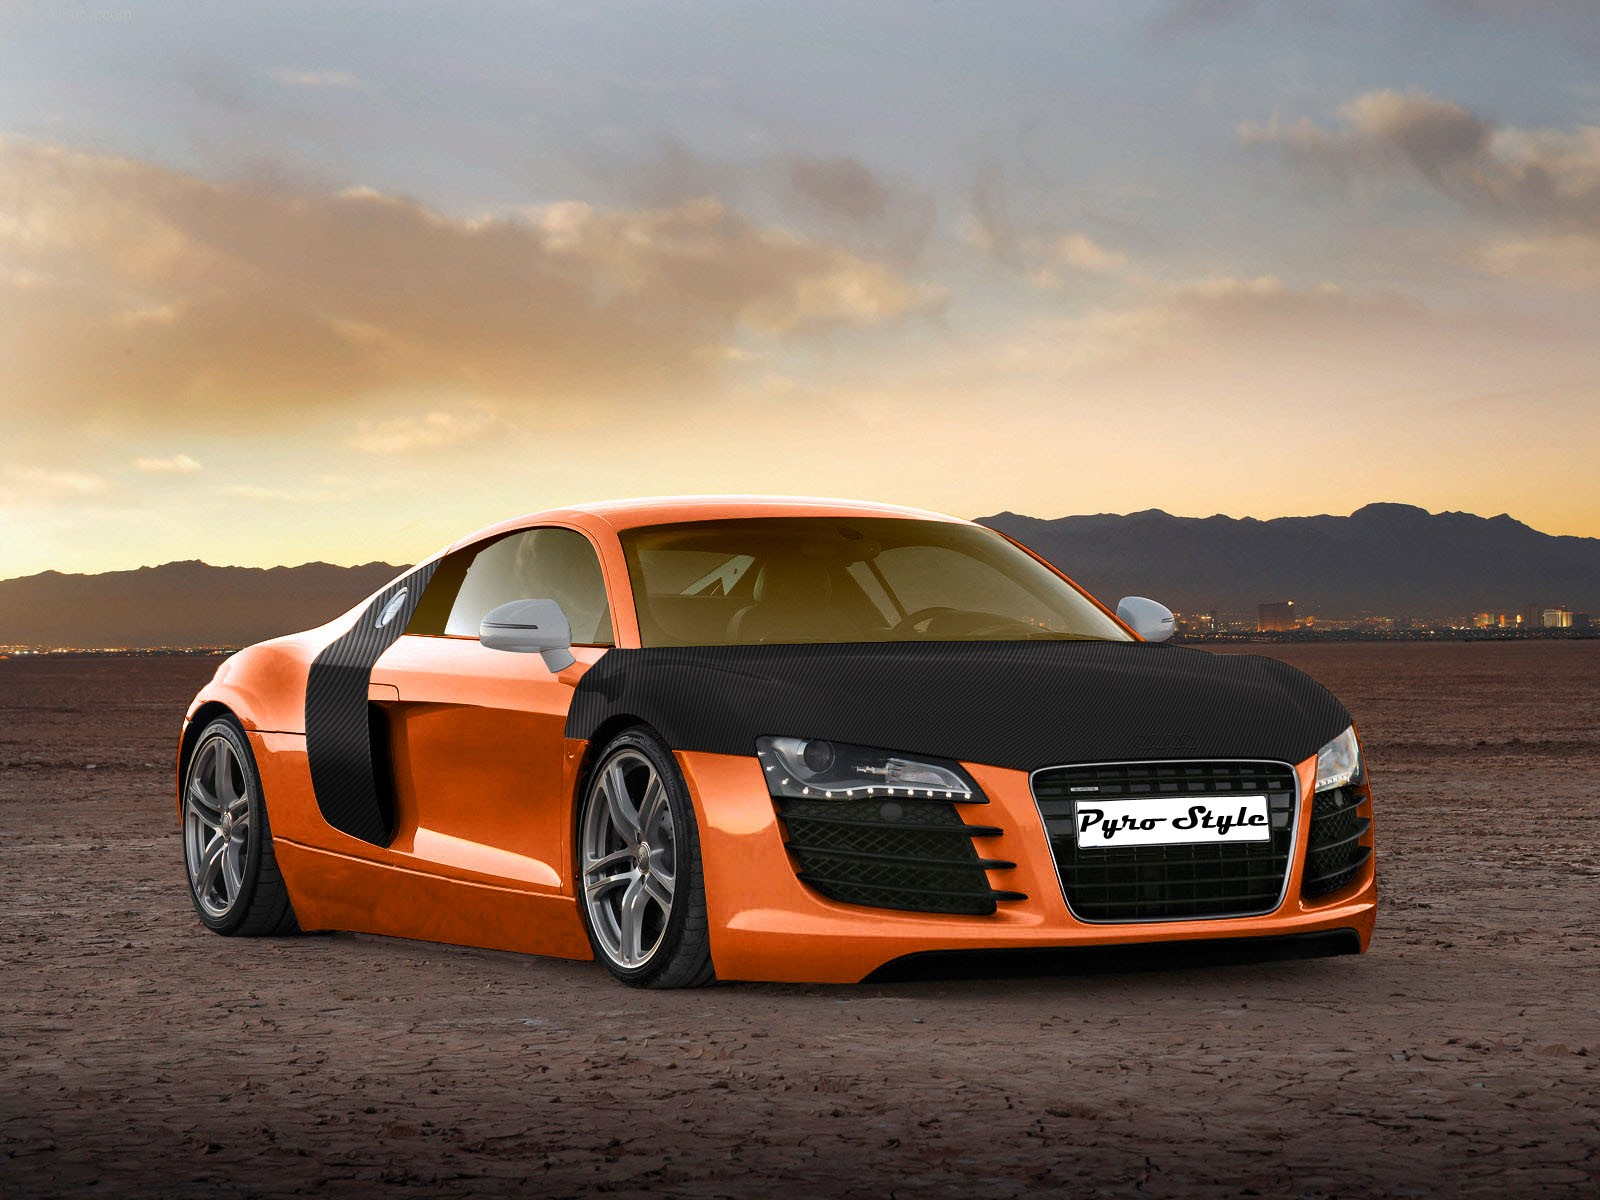 HD car Wallpapers is the no1 source of Car wallpapers 1600x1200